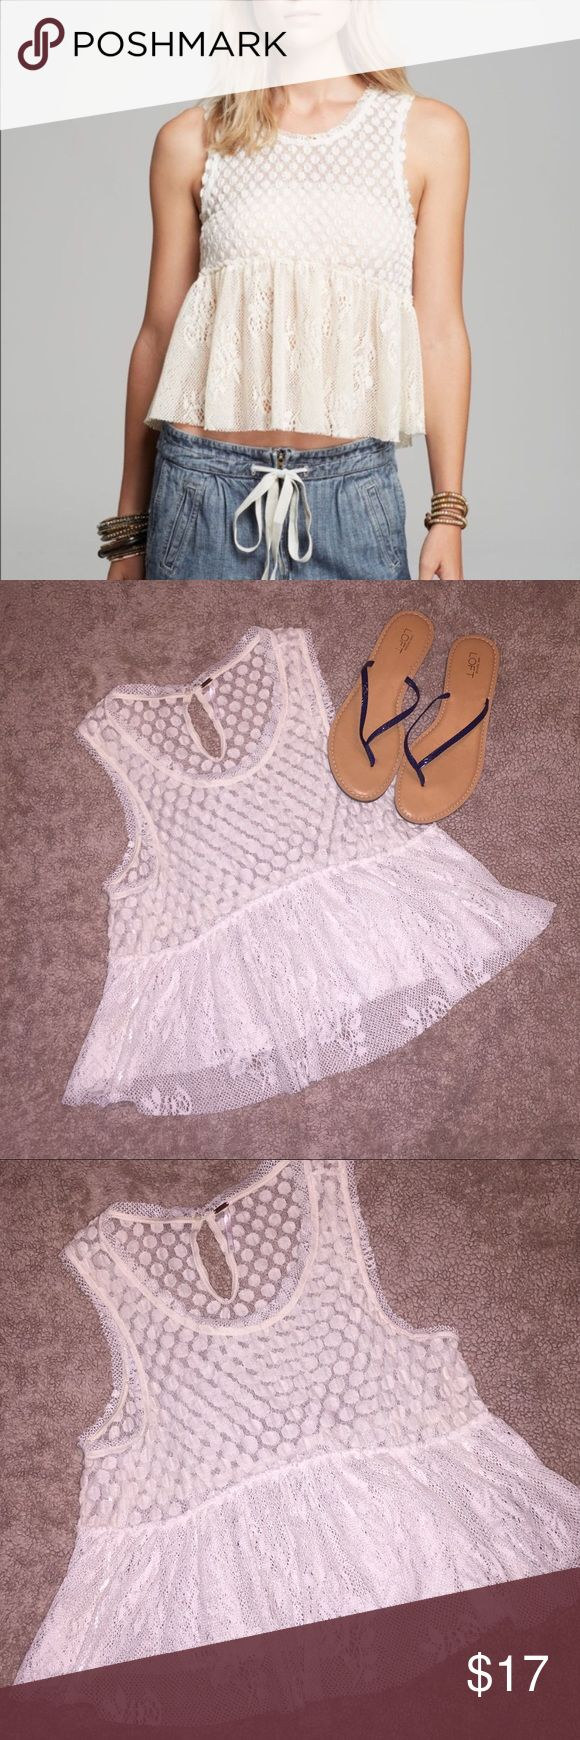 Free People Varsity Lace Peplum Top Excellent condition!! Adorable lace peplum top from Free People. Perfect for summer concert season!! LOFT sandals are also for sale in my closet ❤️❤️ Free People Tops Tank Tops